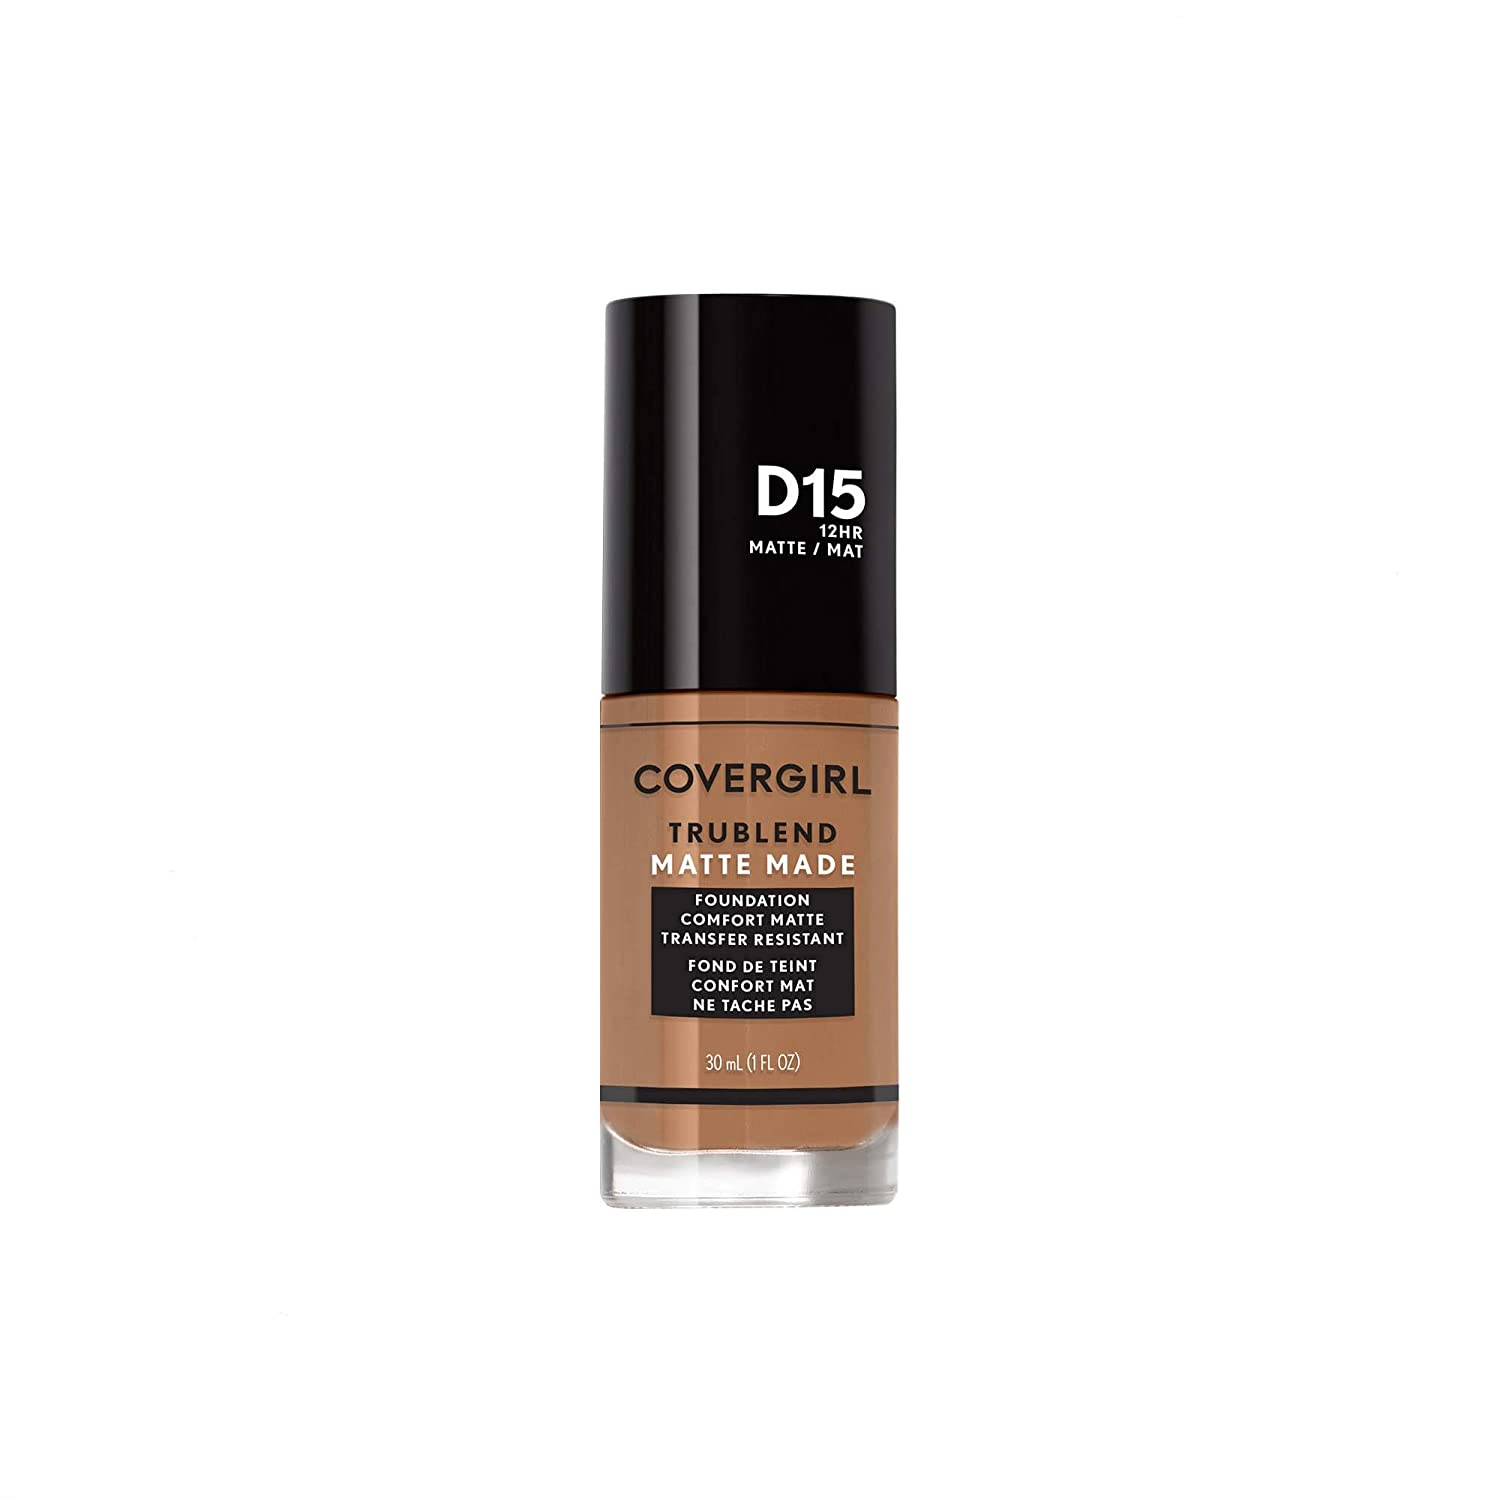 Covergirl TruBlend Matte Made Liquid Foundation, Warm Tawny